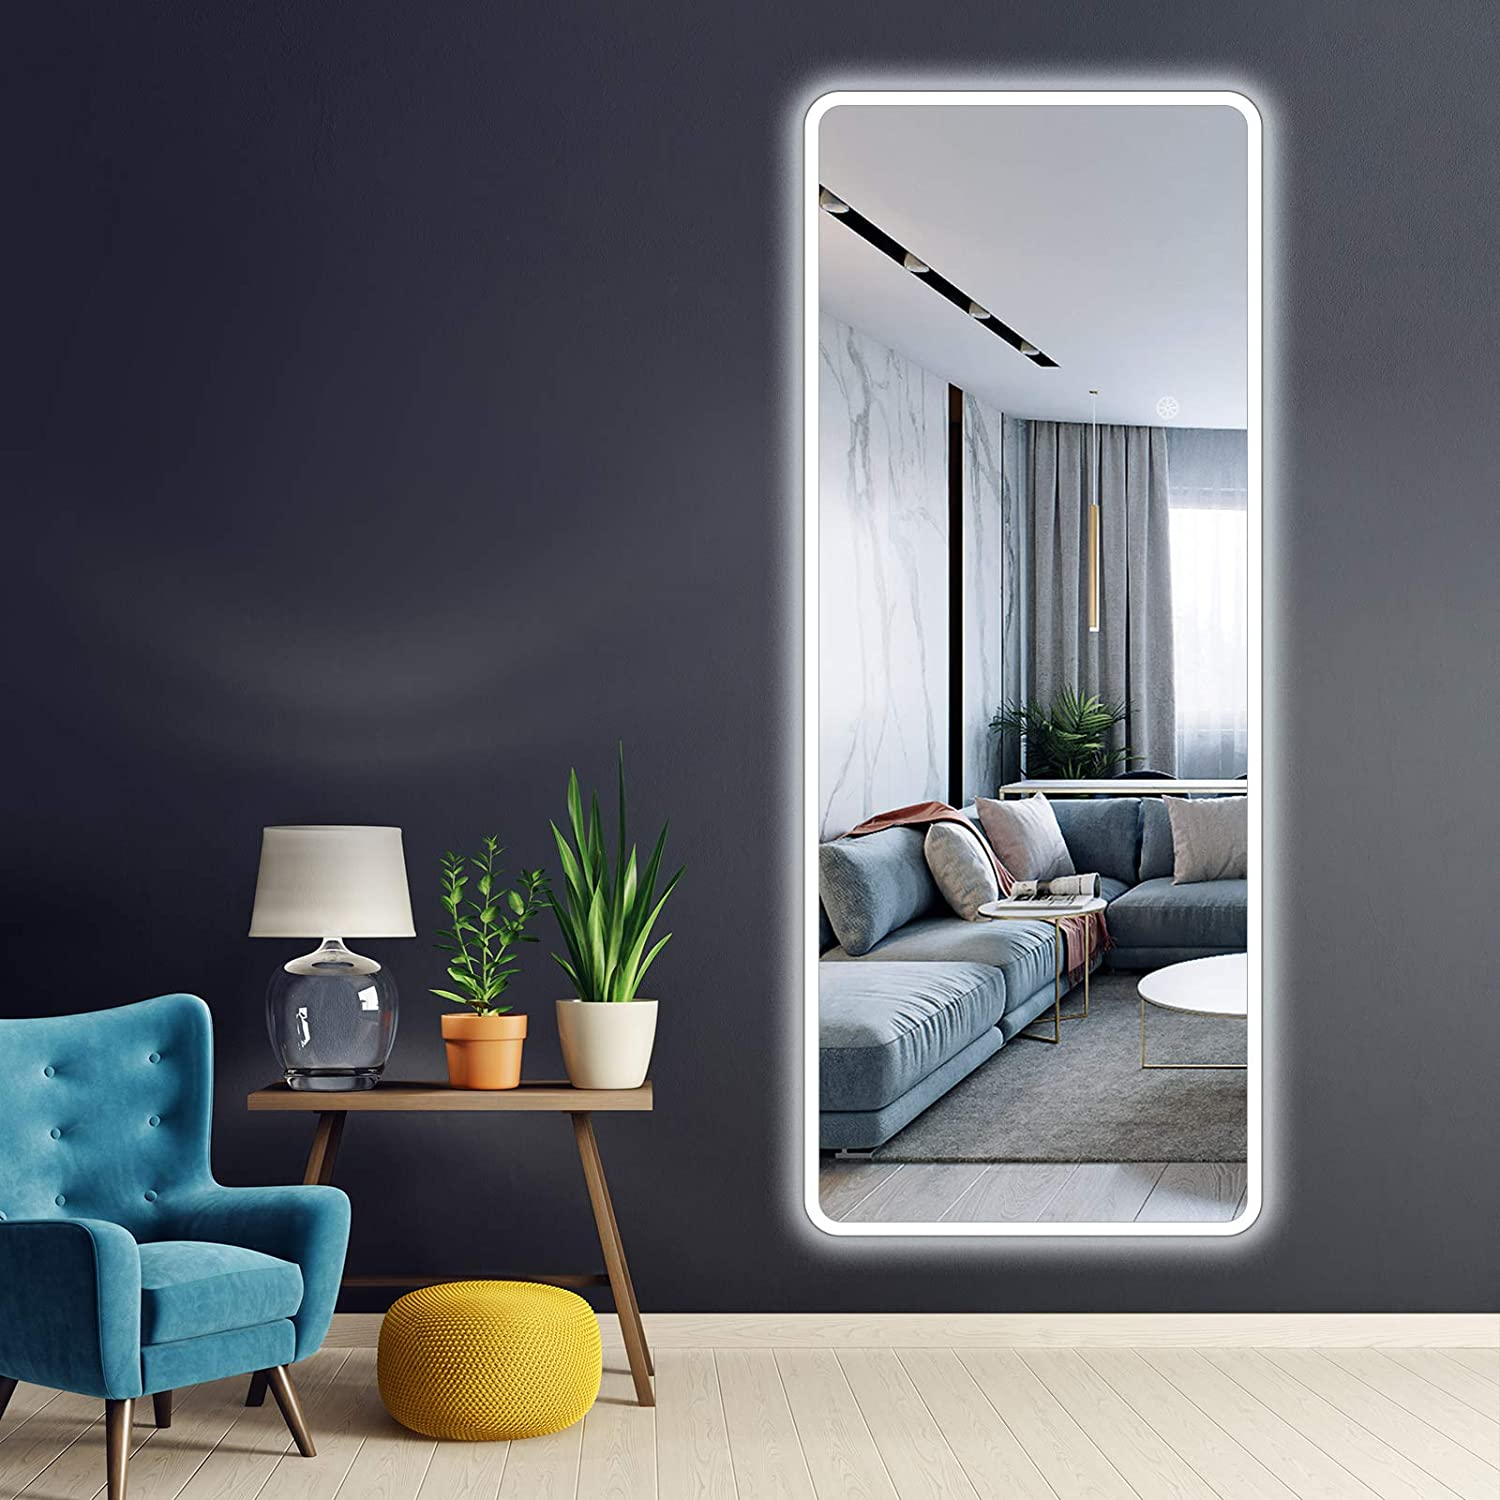 Amazon Com Viiyseam 59 X24 Wall Mounted Led Vanity Backlit Mirror Oversized Full Length Dressing Mirror With Aluminum Frame Touch Button Stepless Dimmable Lighting Bathroom Bedroom Rectangle Whole Body Mirror Kitchen Dining